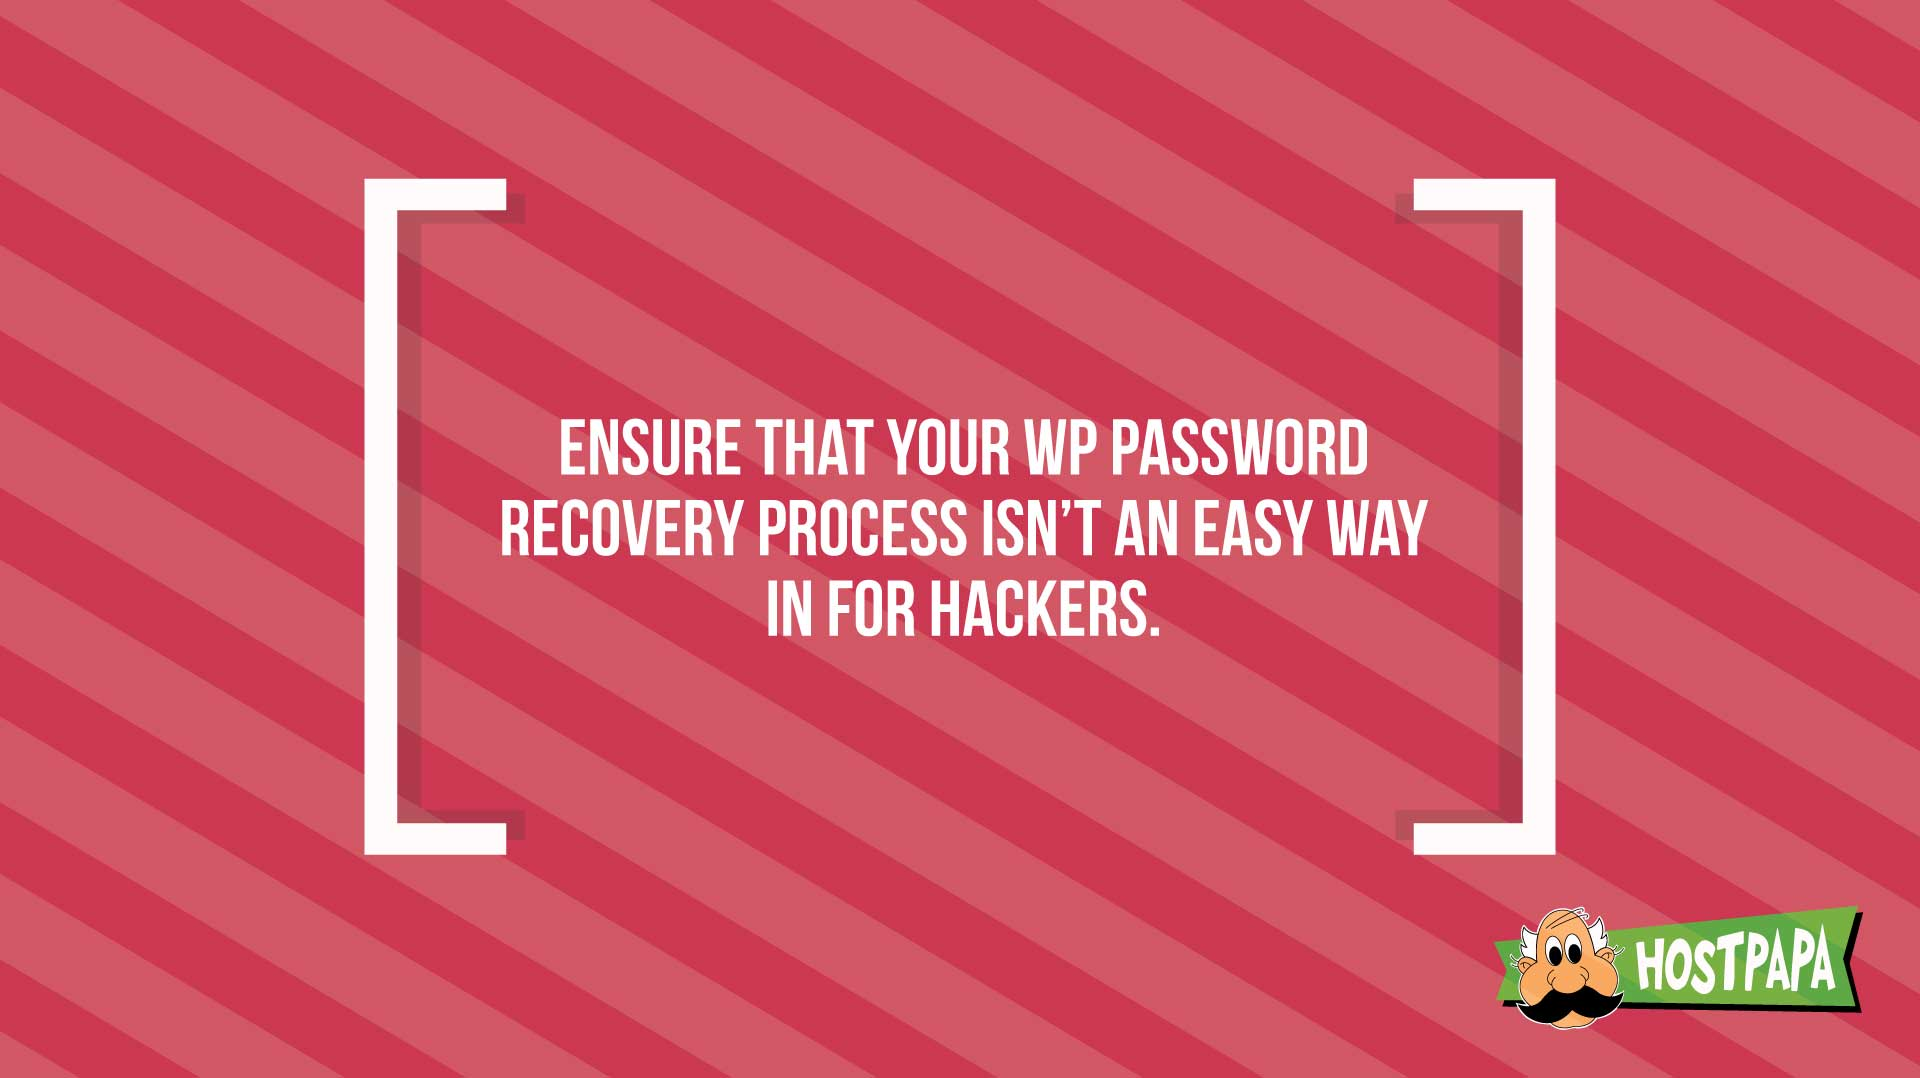 Ensure that your WP password recovery process isn't an easy way in for hackers